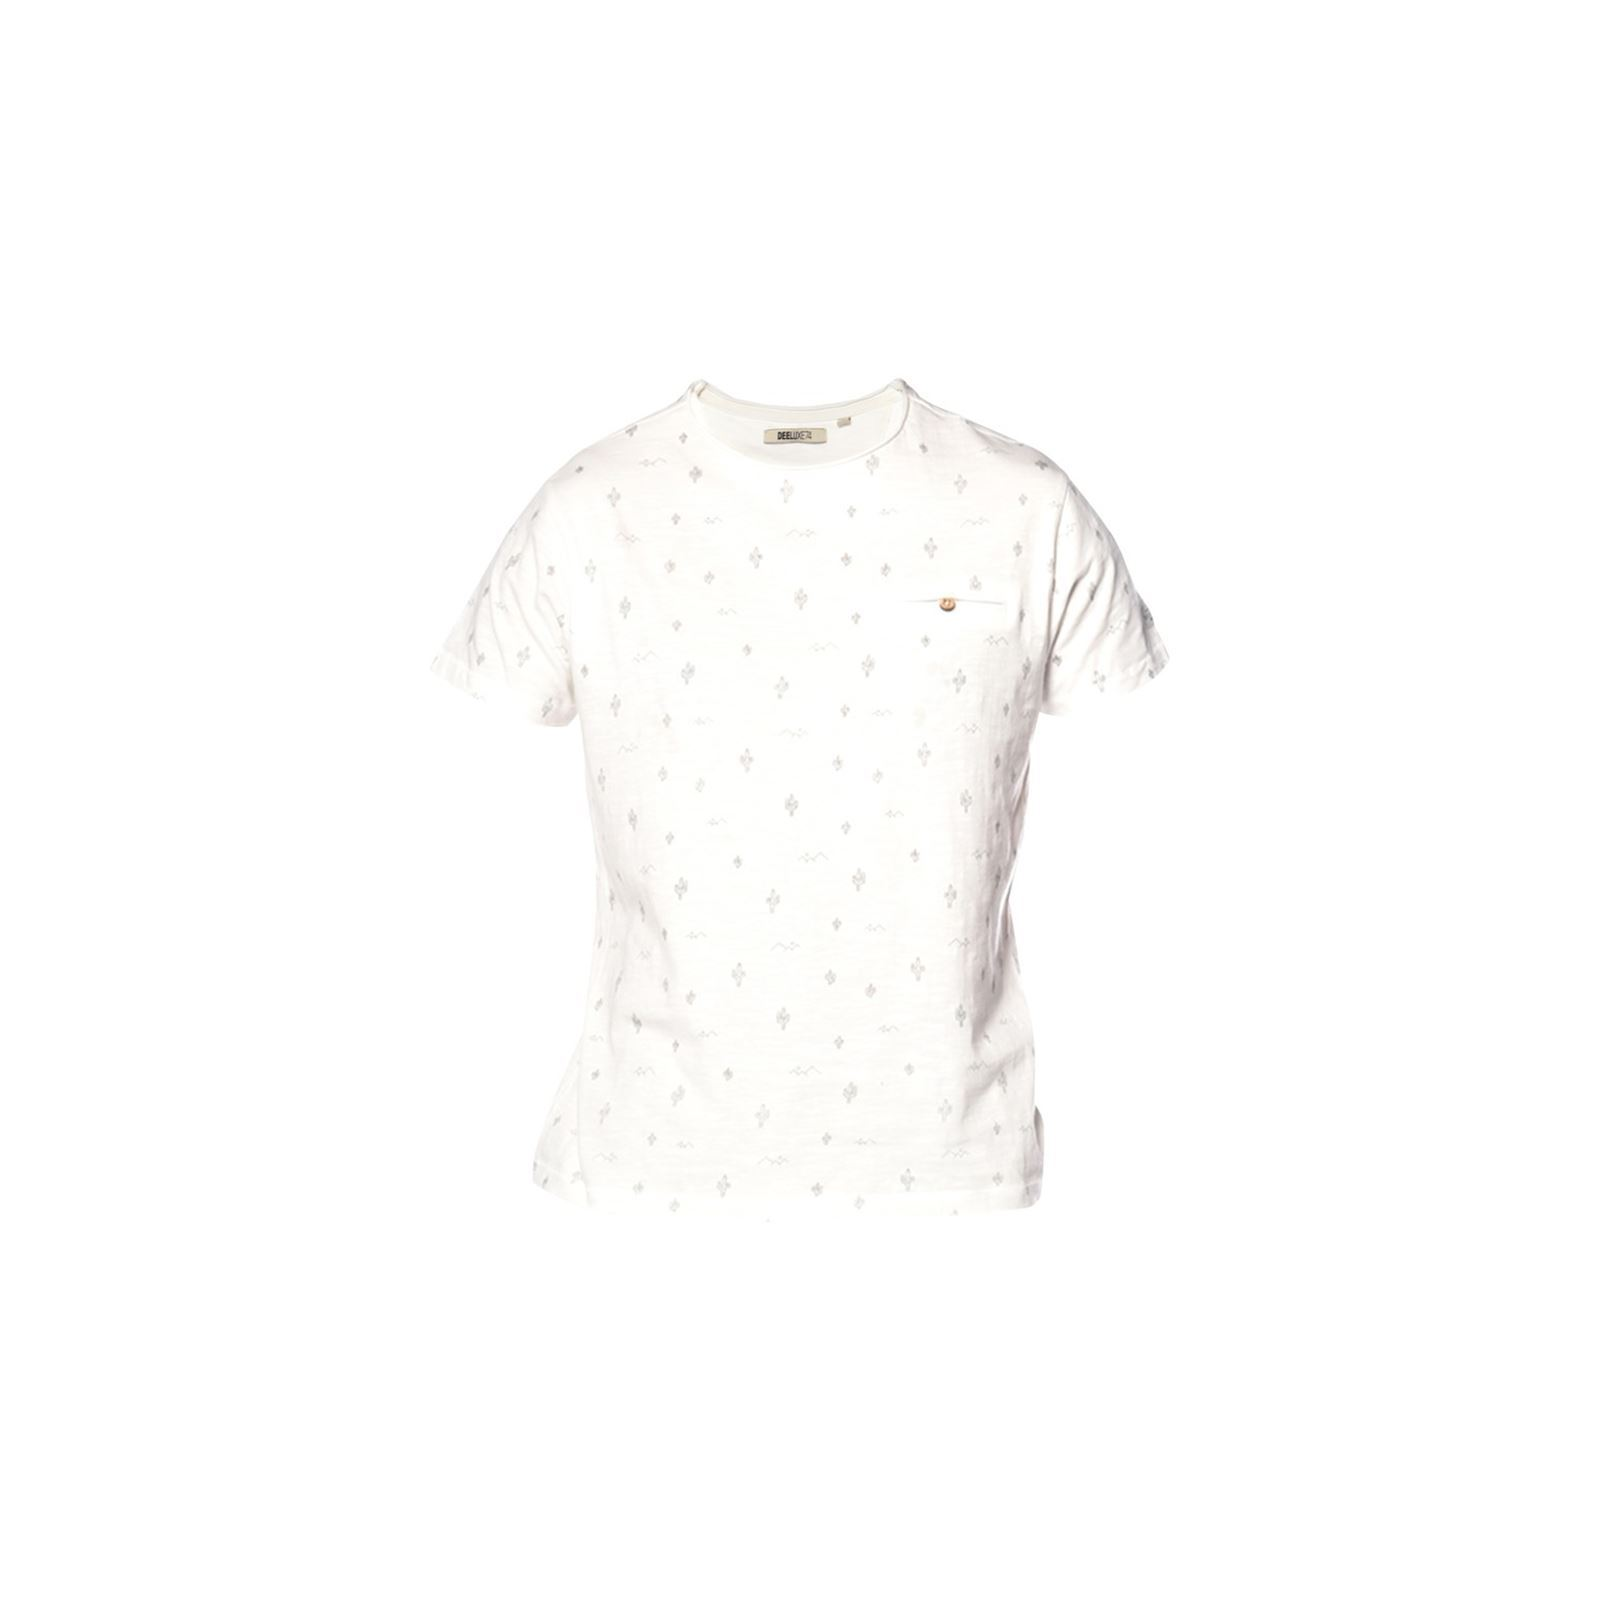 Courtes V Homme Manches shirt Deeluxe Blanc MexicoT N08wmnv